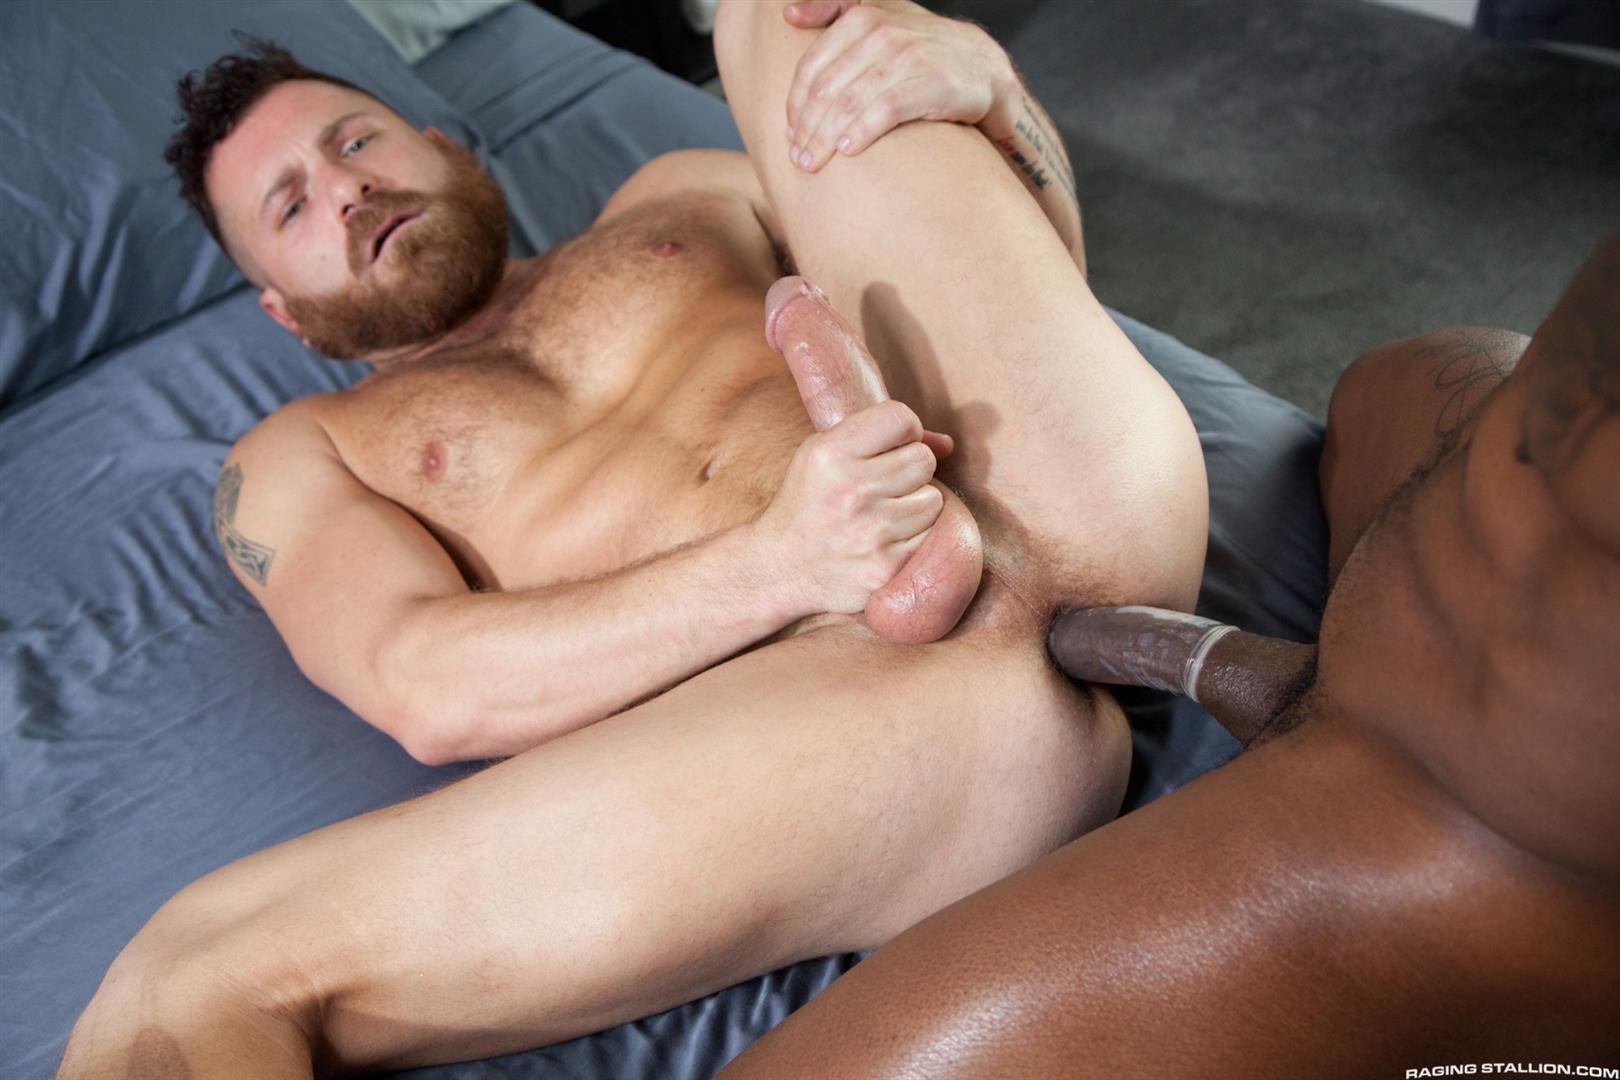 Raging-Stallion-Riley-Mitchell-and-Max-Konnor-Big-Black-Cock-Fucking-Hairy-Muscle-Bear-12 Max Konnor Fucks His Ride Share Driver In The Ass With His Big Black Dick